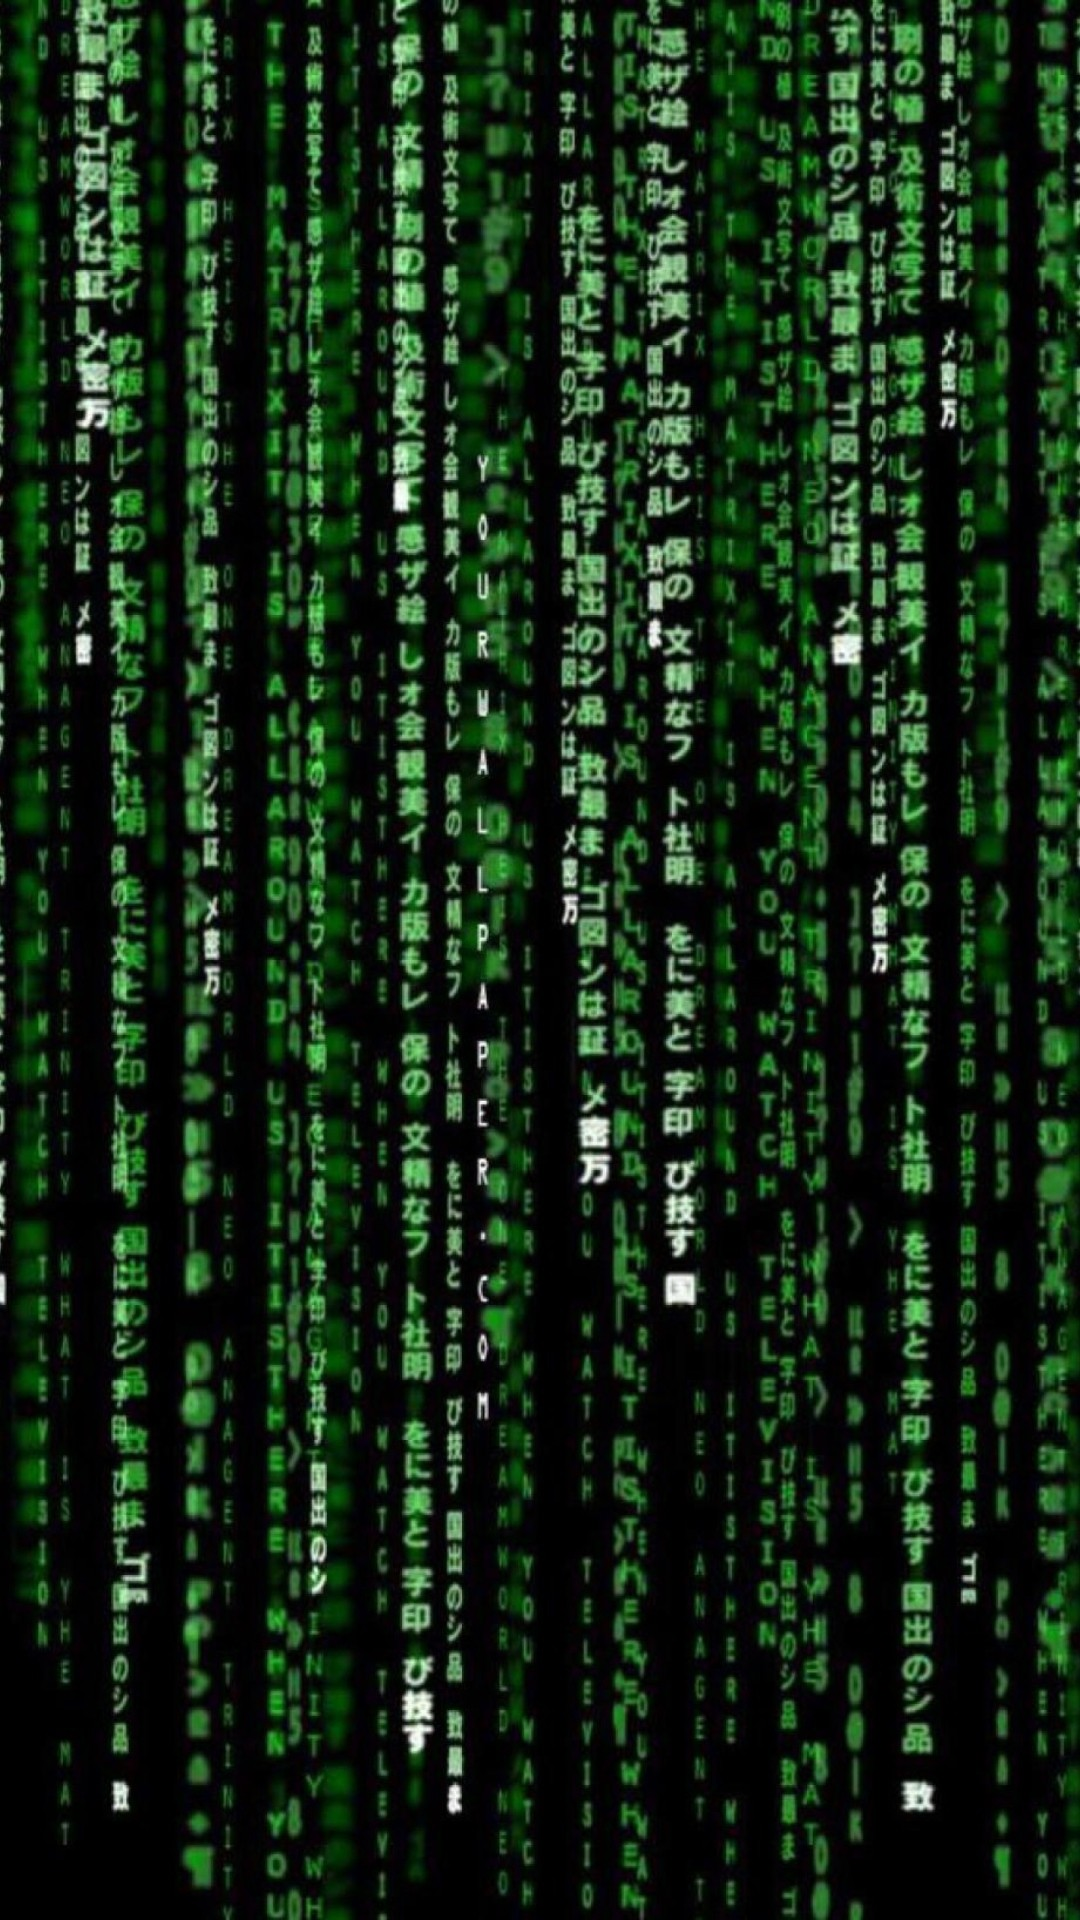 Matrix wallpaper for android